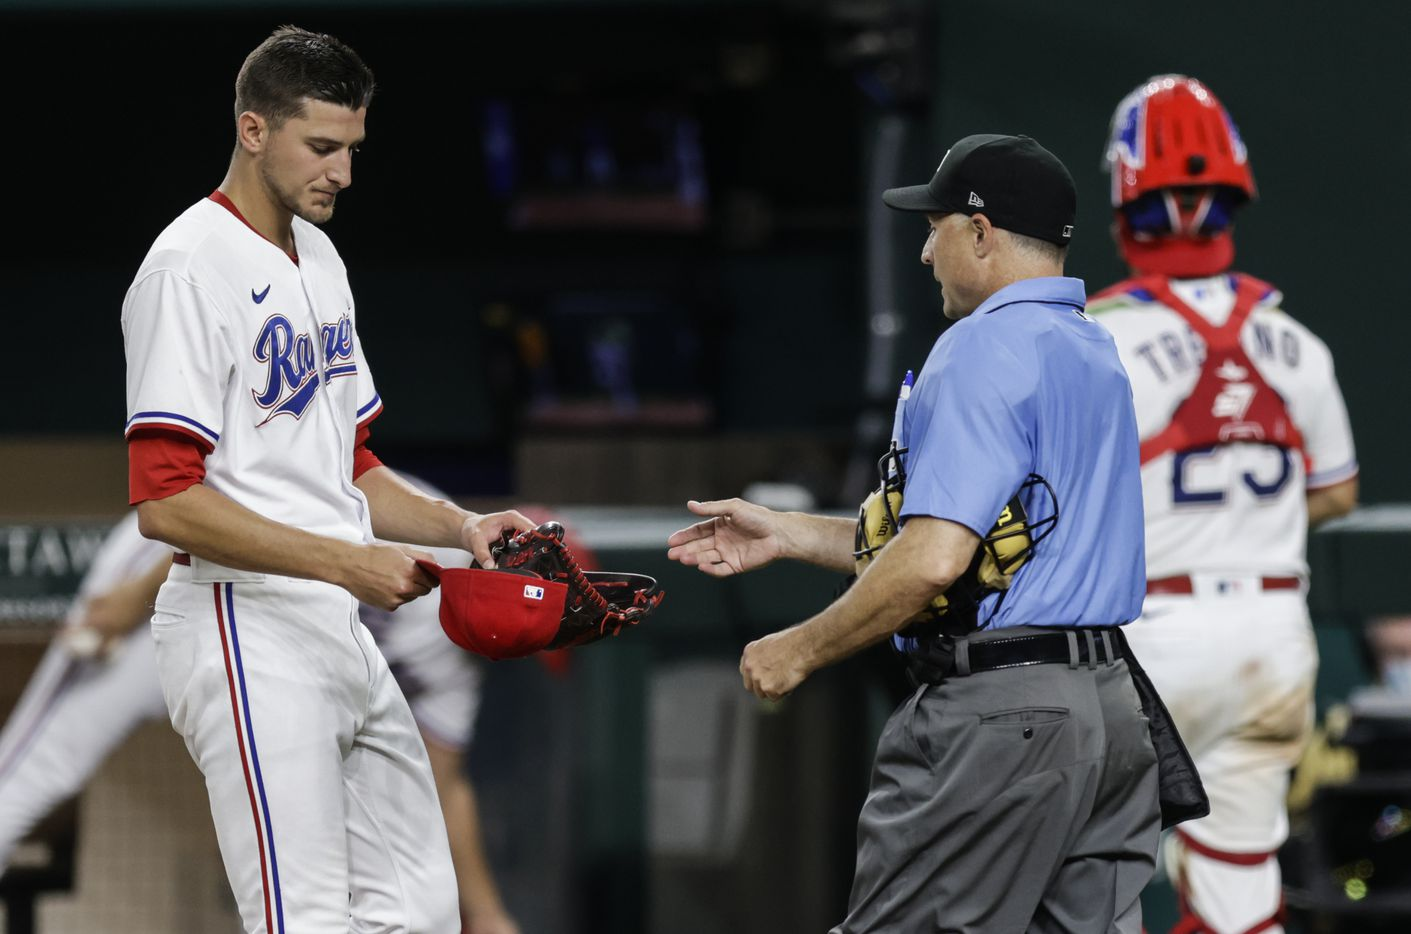 Home plate umpire Dan Iassogna inspects Texas Rangers relief pitcher Brett Martin's (59) glove and hat during the seventh inning of a baseball game against the Oakland Athletics in Arlington, Monday, June 21, 2021. (Brandon Wade/Special Contributor)